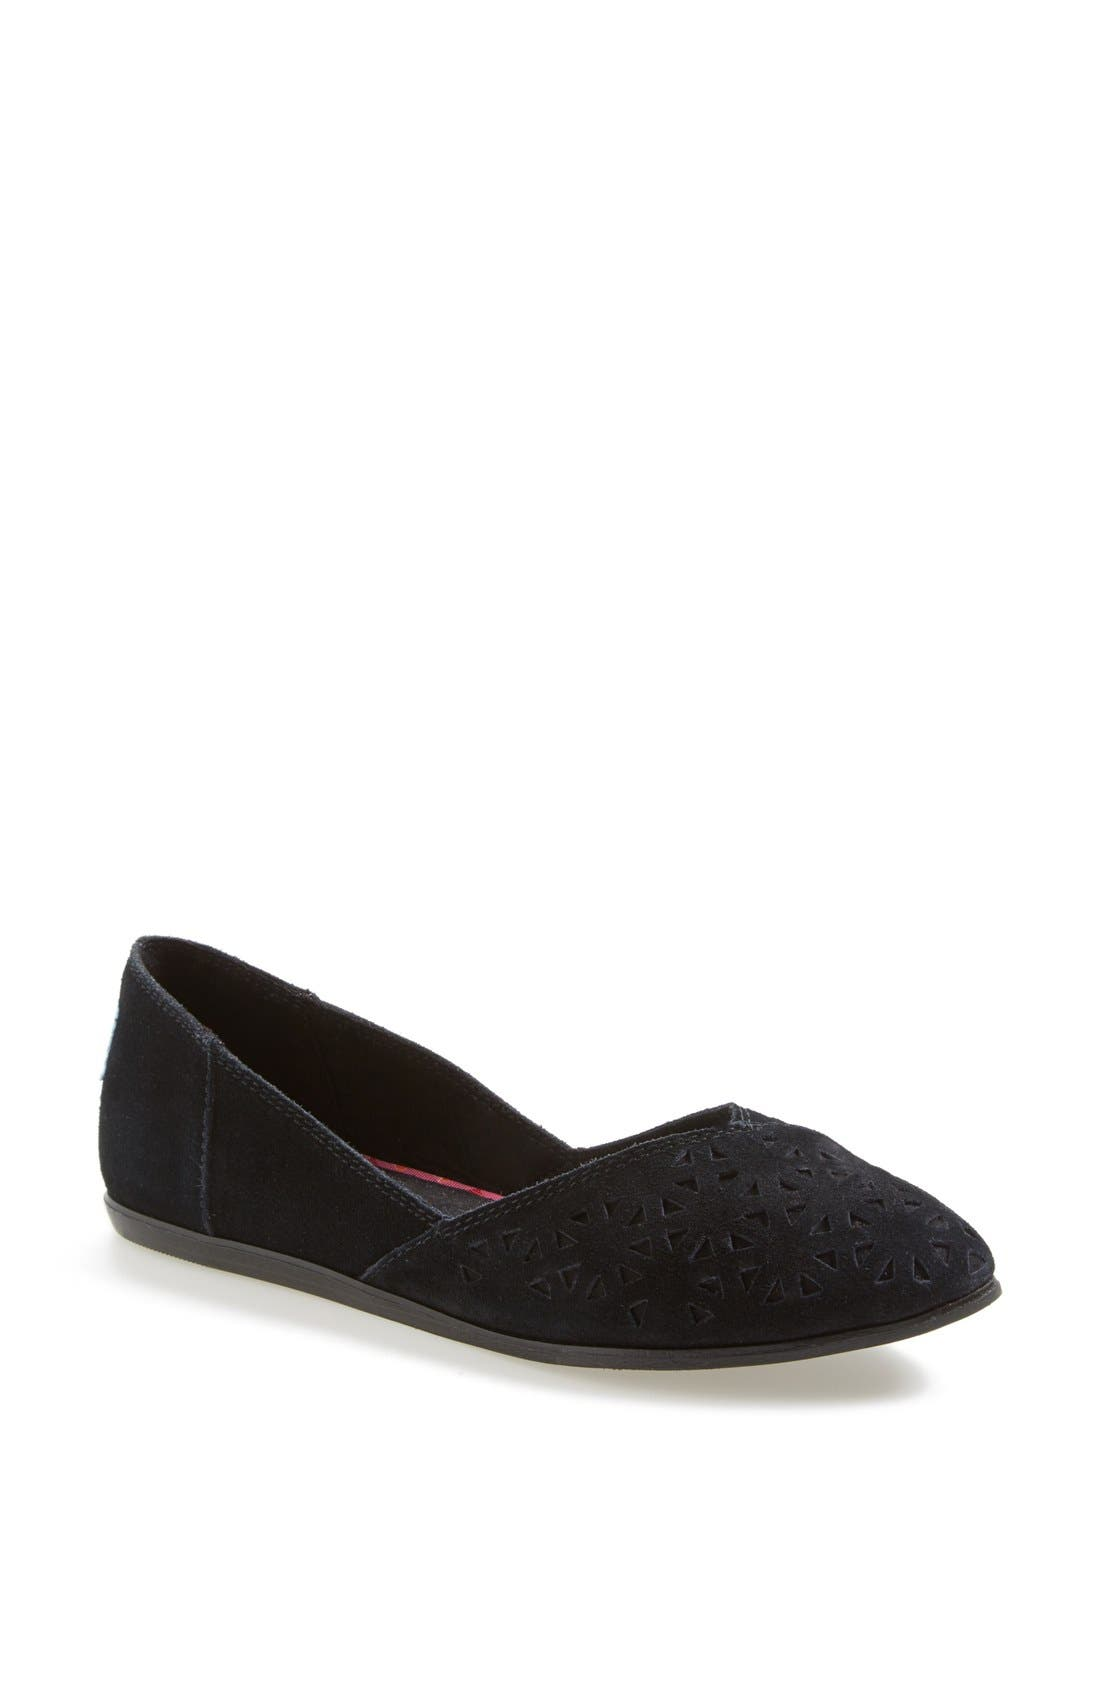 'Jutti' Slip-On,                         Main,                         color, 001